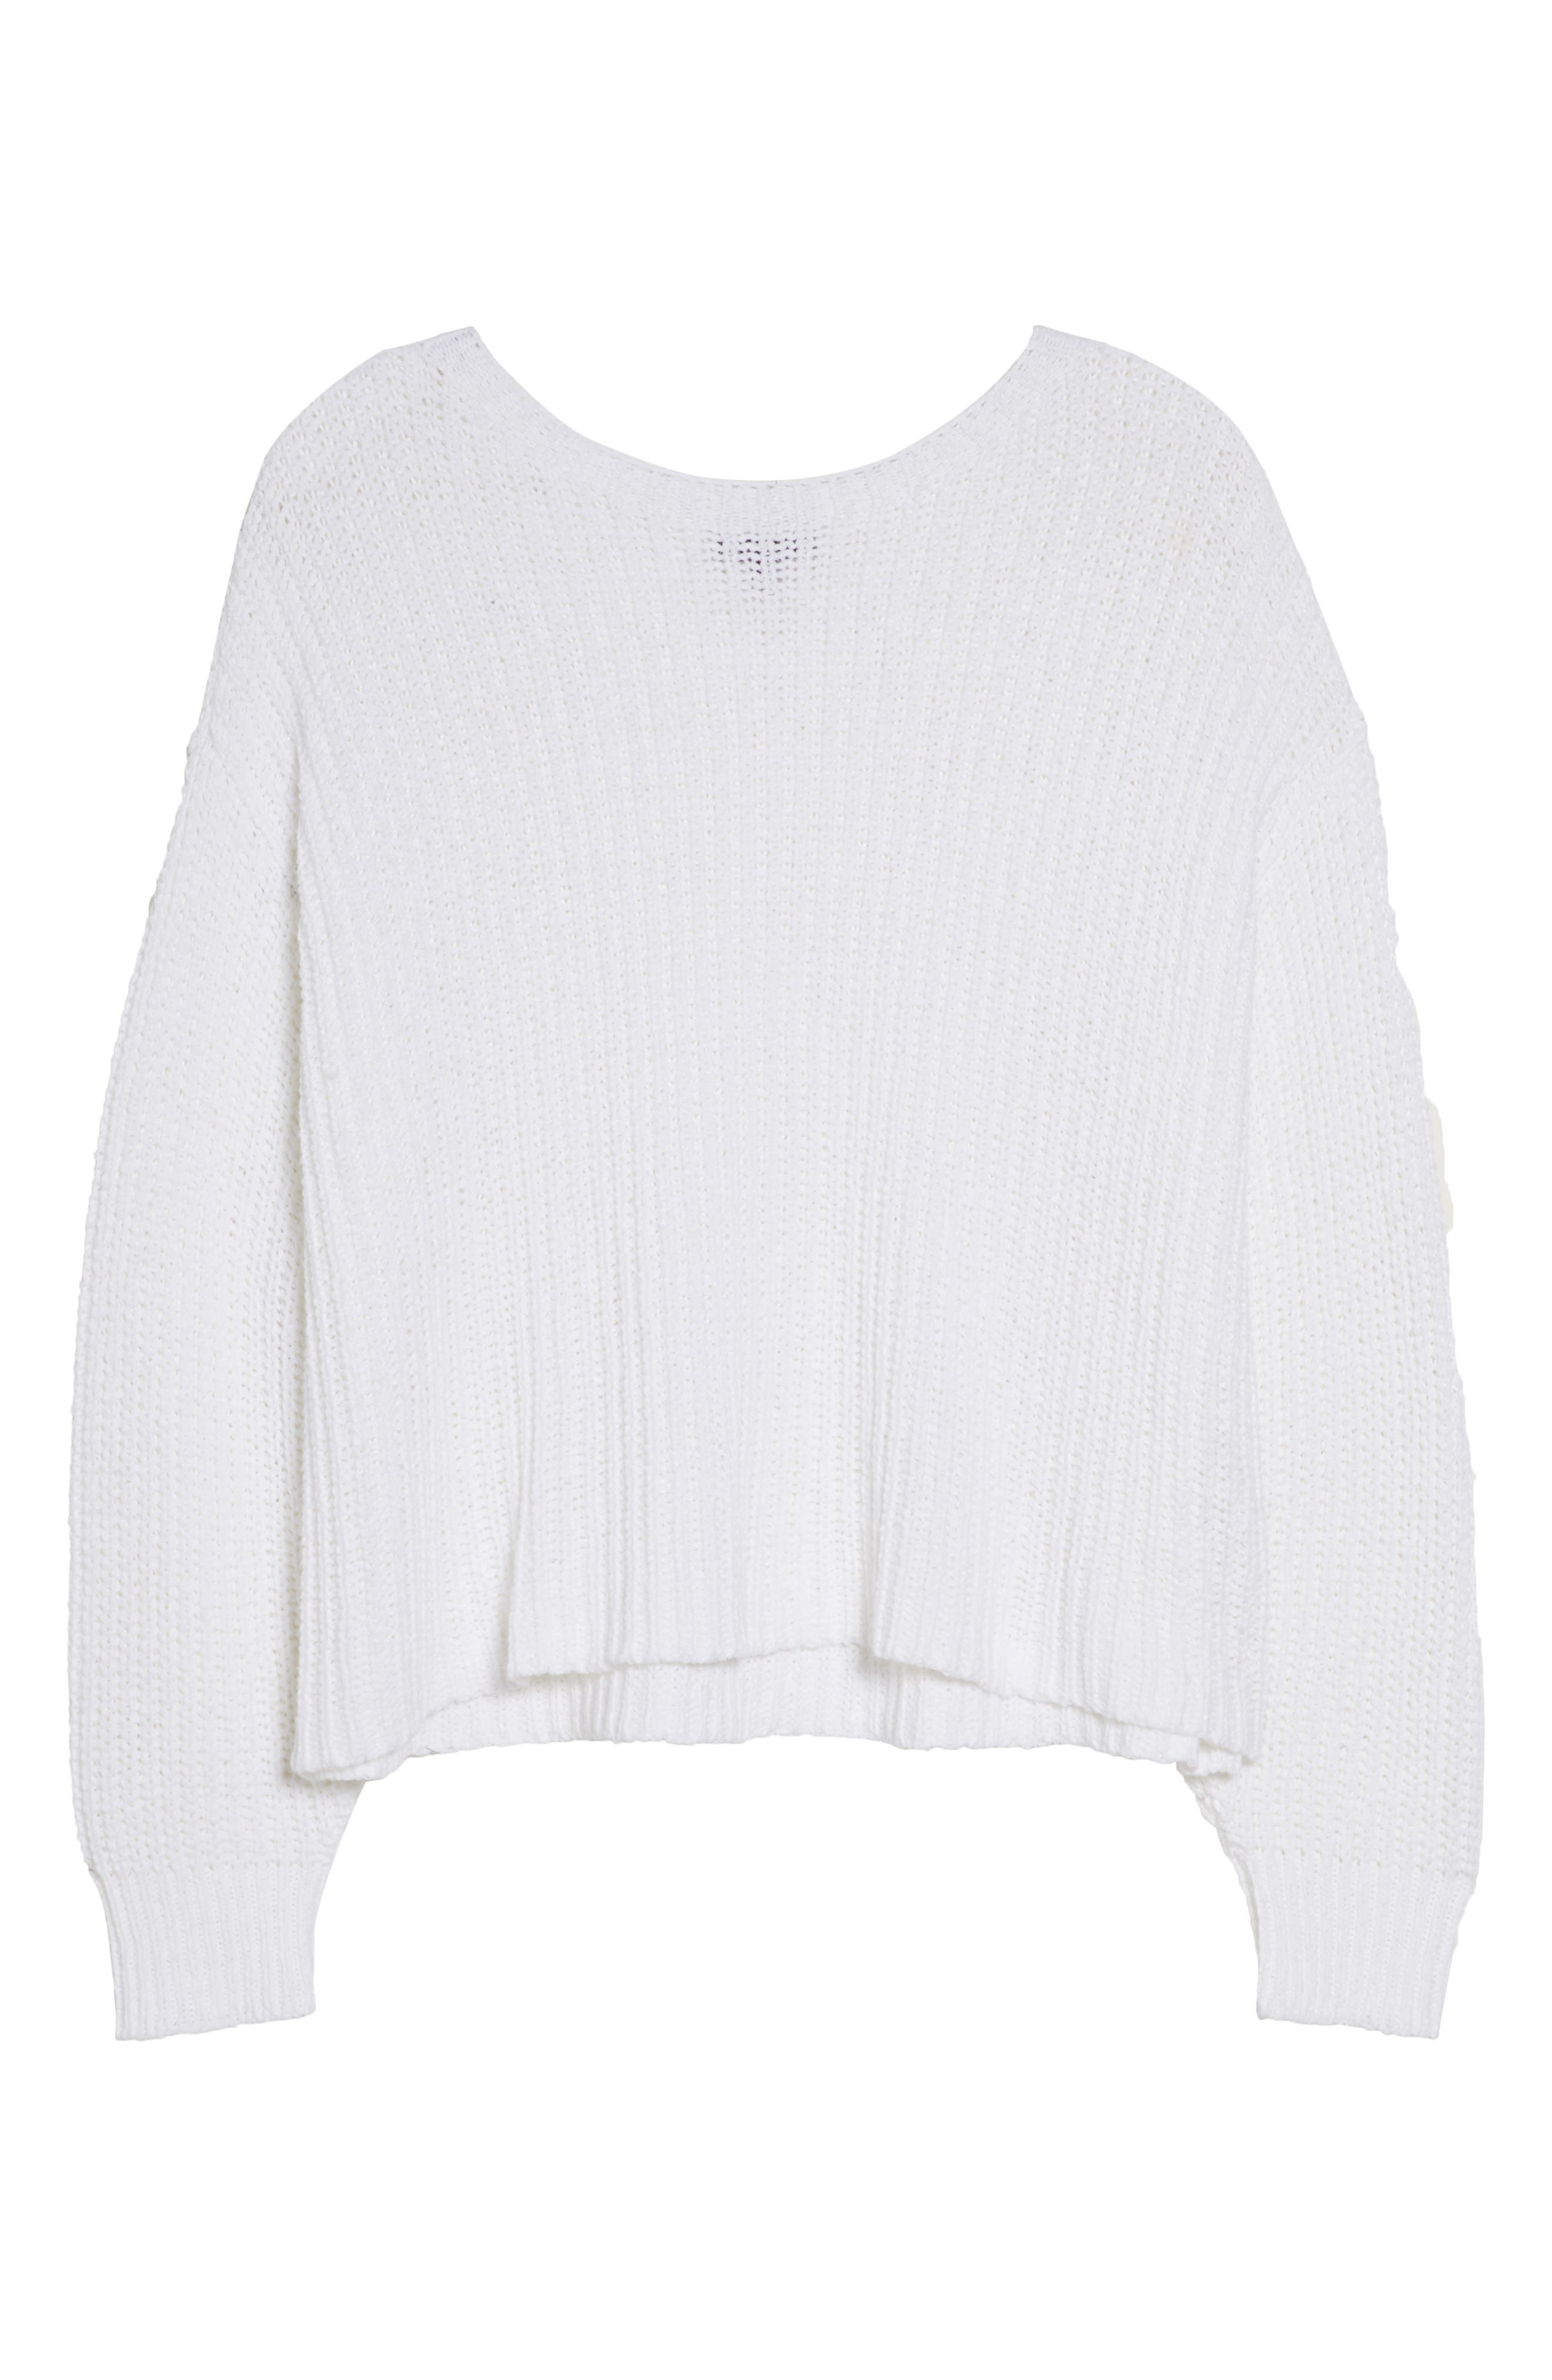 Crewneck Crop Shaker Sweater,                             Alternate thumbnail 11, color,                             WHITE